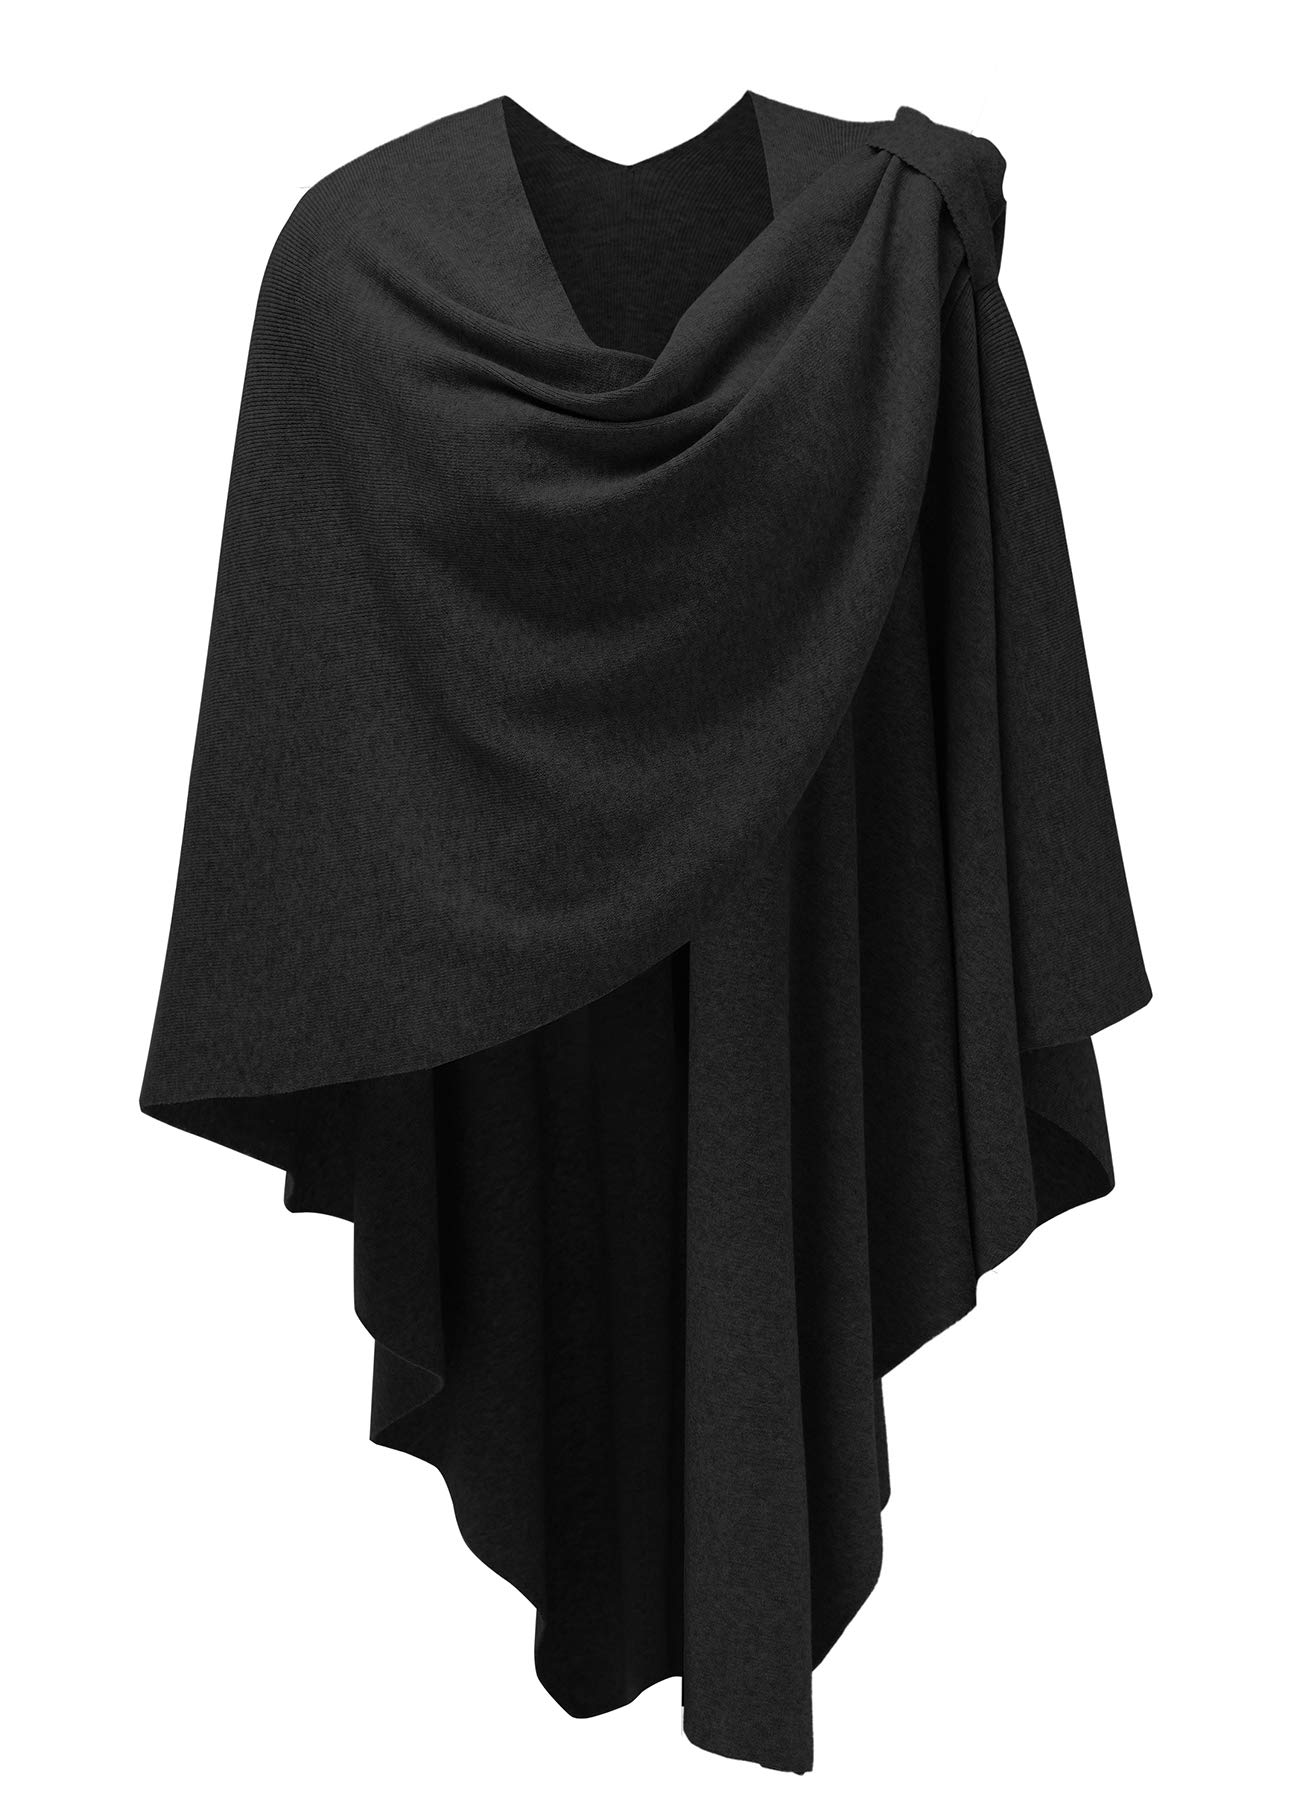 Womens Large Cross Front Poncho Style Sweater Plus Sized Wrap Topper Black by PULI